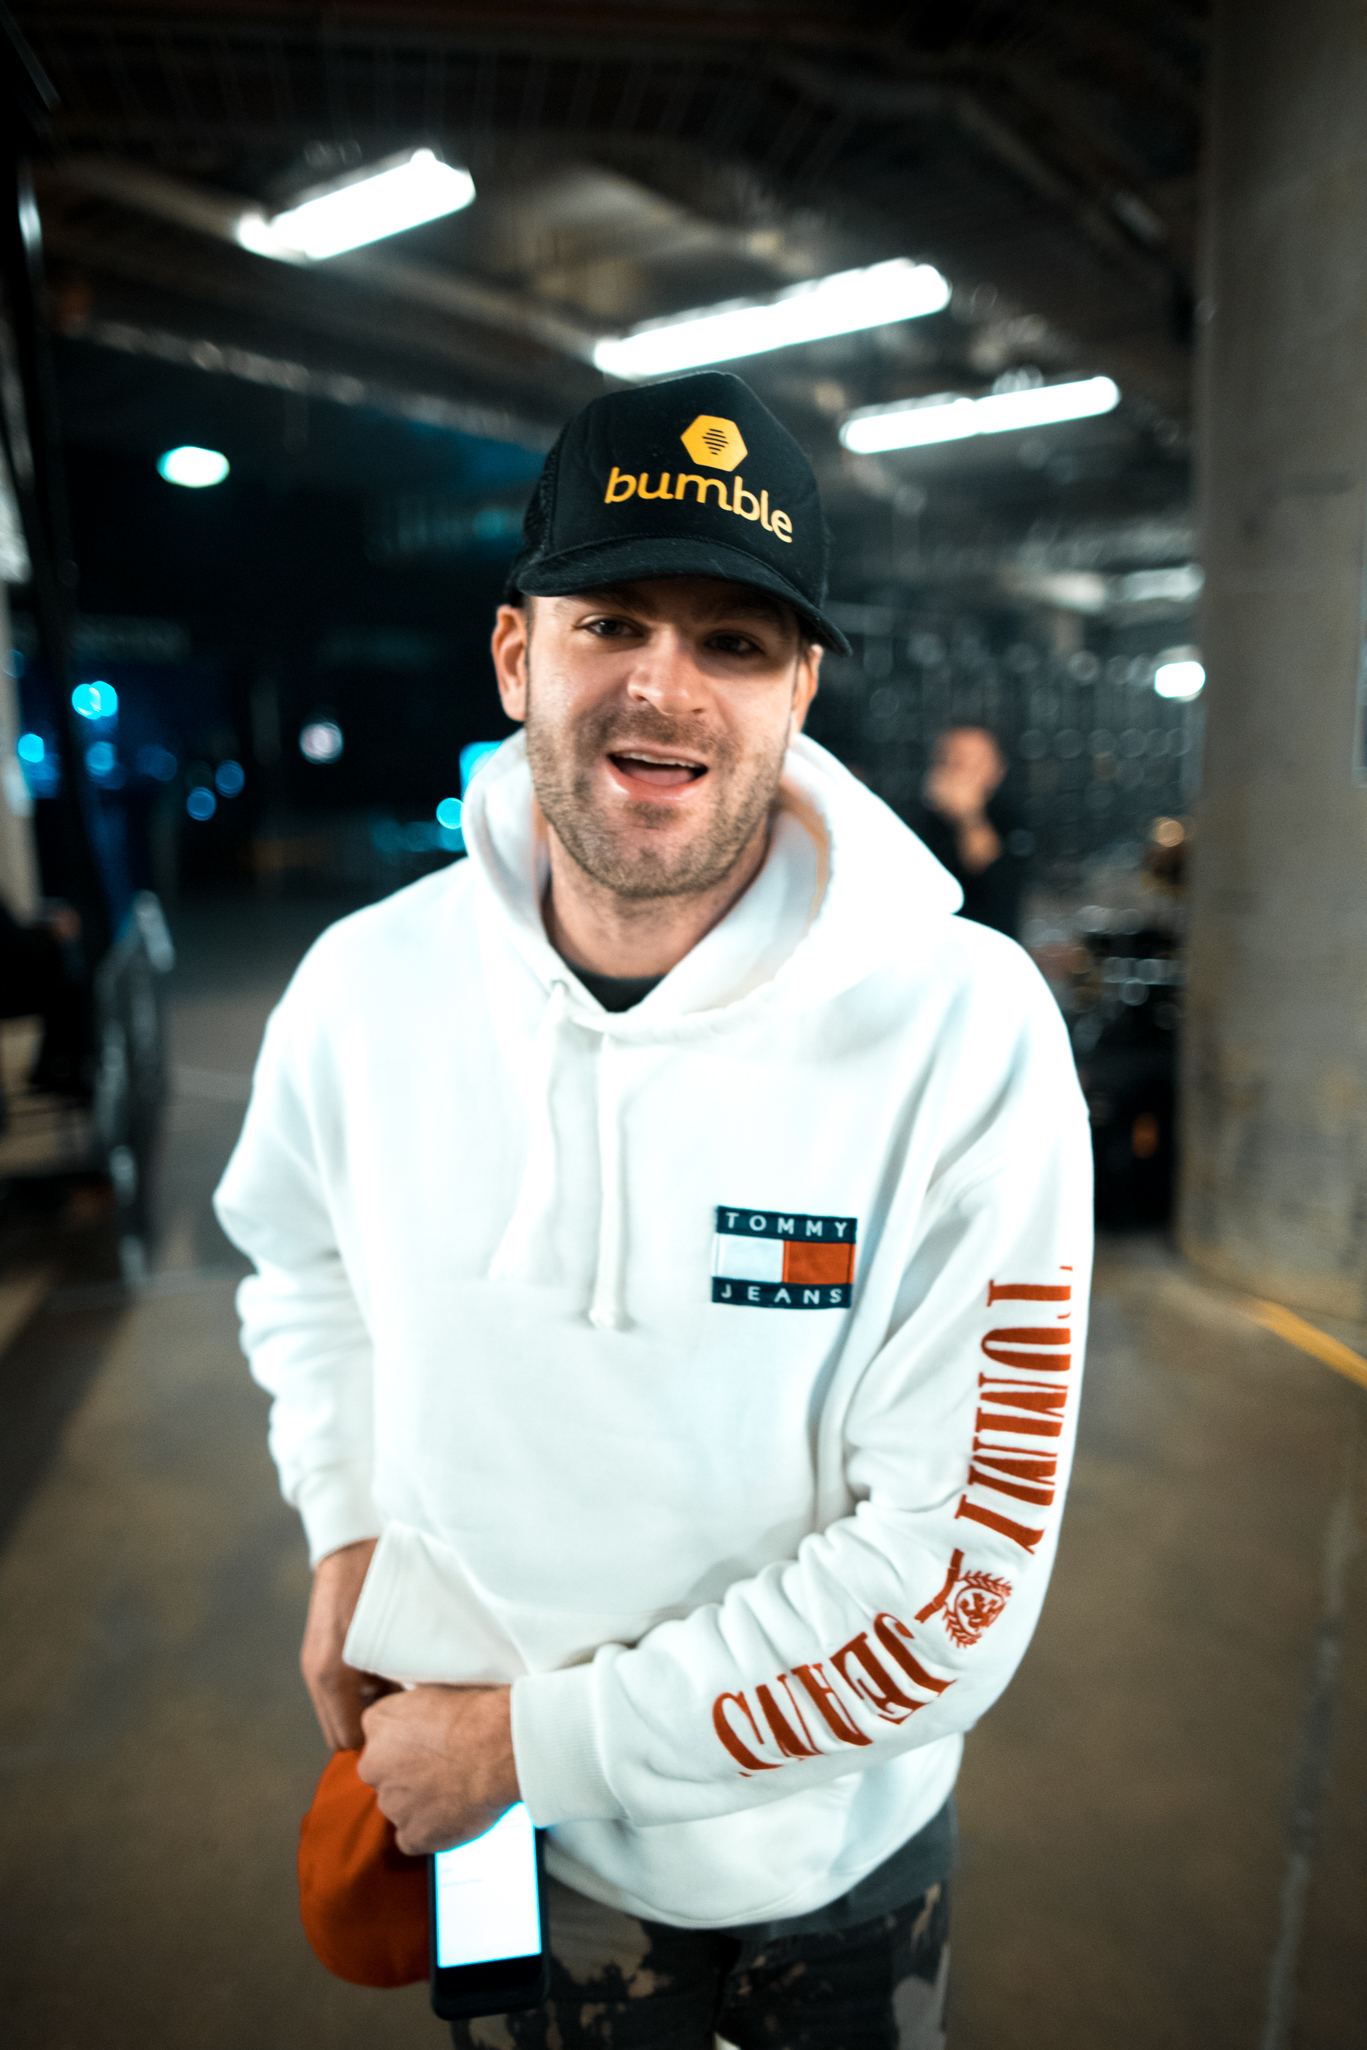 Chainsmokers x Bumble 2-7-small.jpg